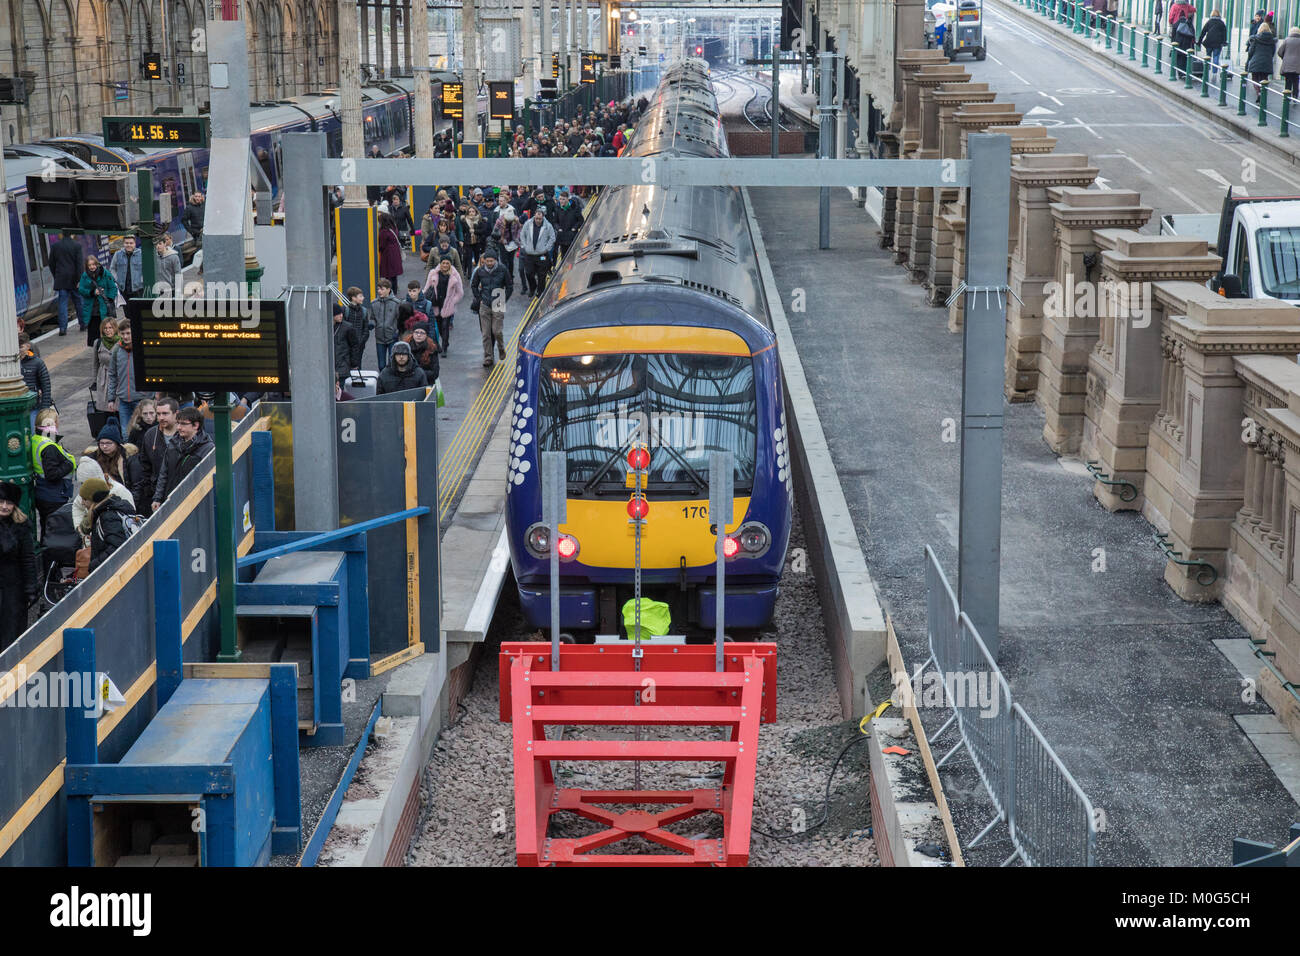 A Scotrail Class 170 Turbostar diesel train at Platform 12 in Edinburgh Waverley station. This platform opened in - Stock Image